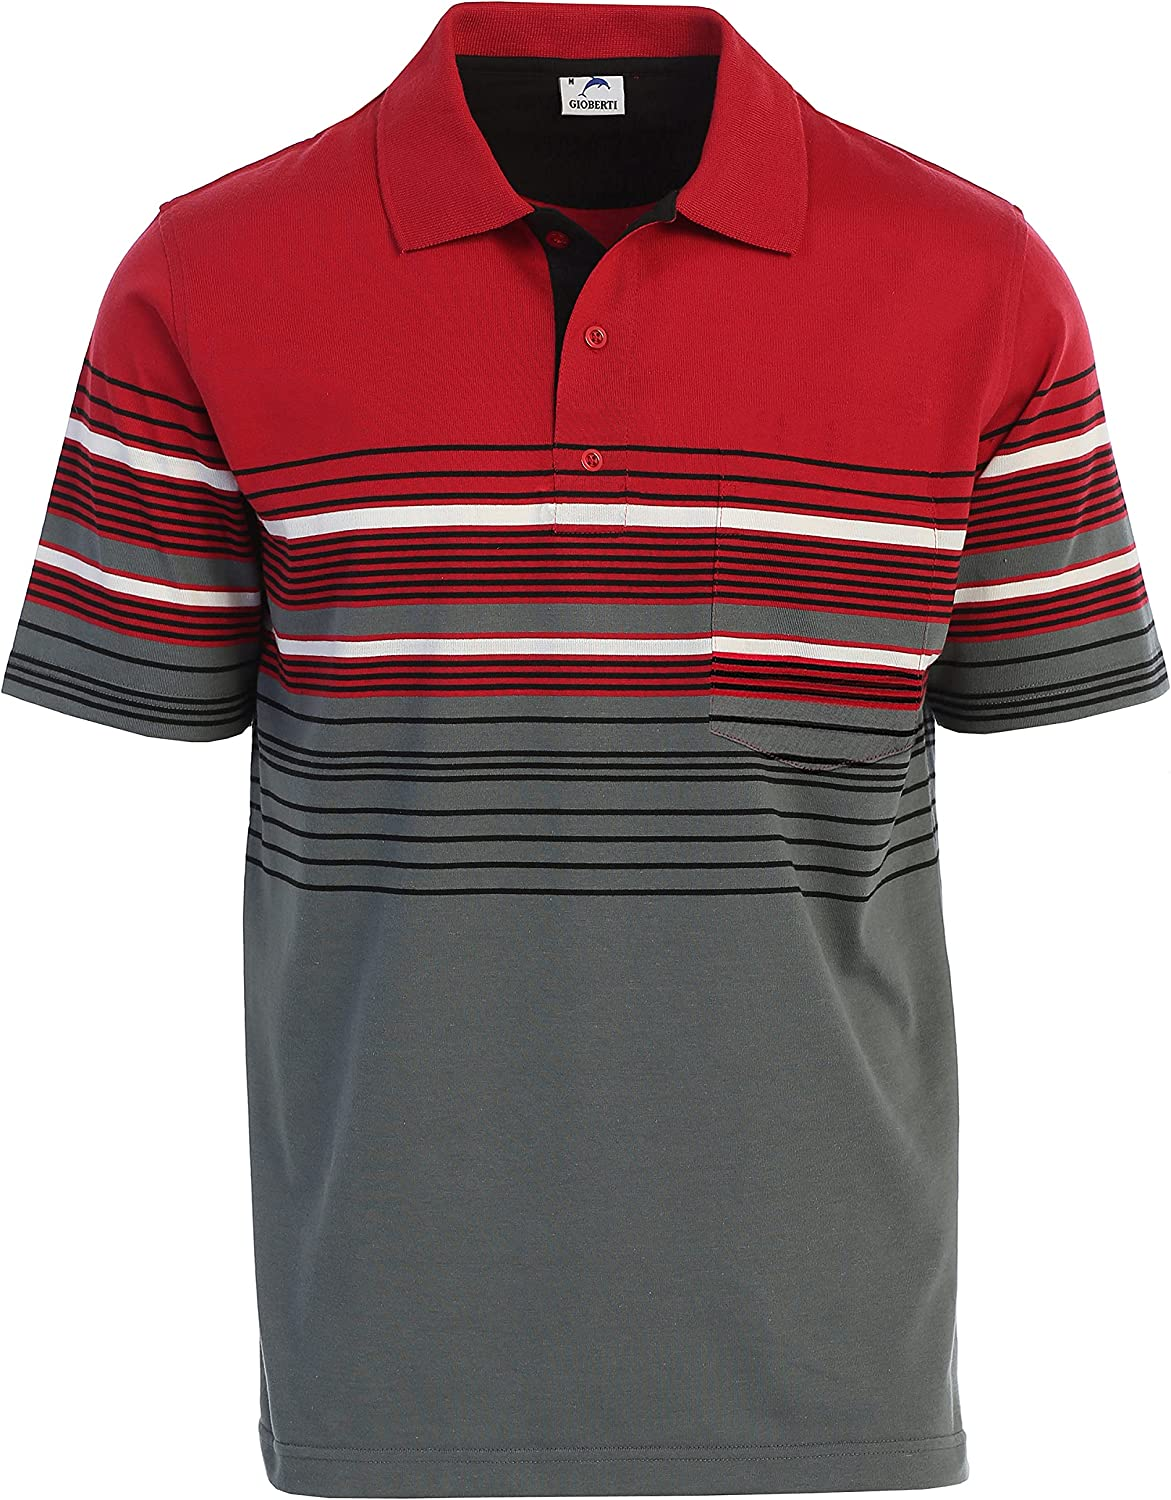 Gioberti Mens Slim Fit Striped Challenge the lowest price of Japan ☆ Shirt Pocket with Polo Sale Special Price